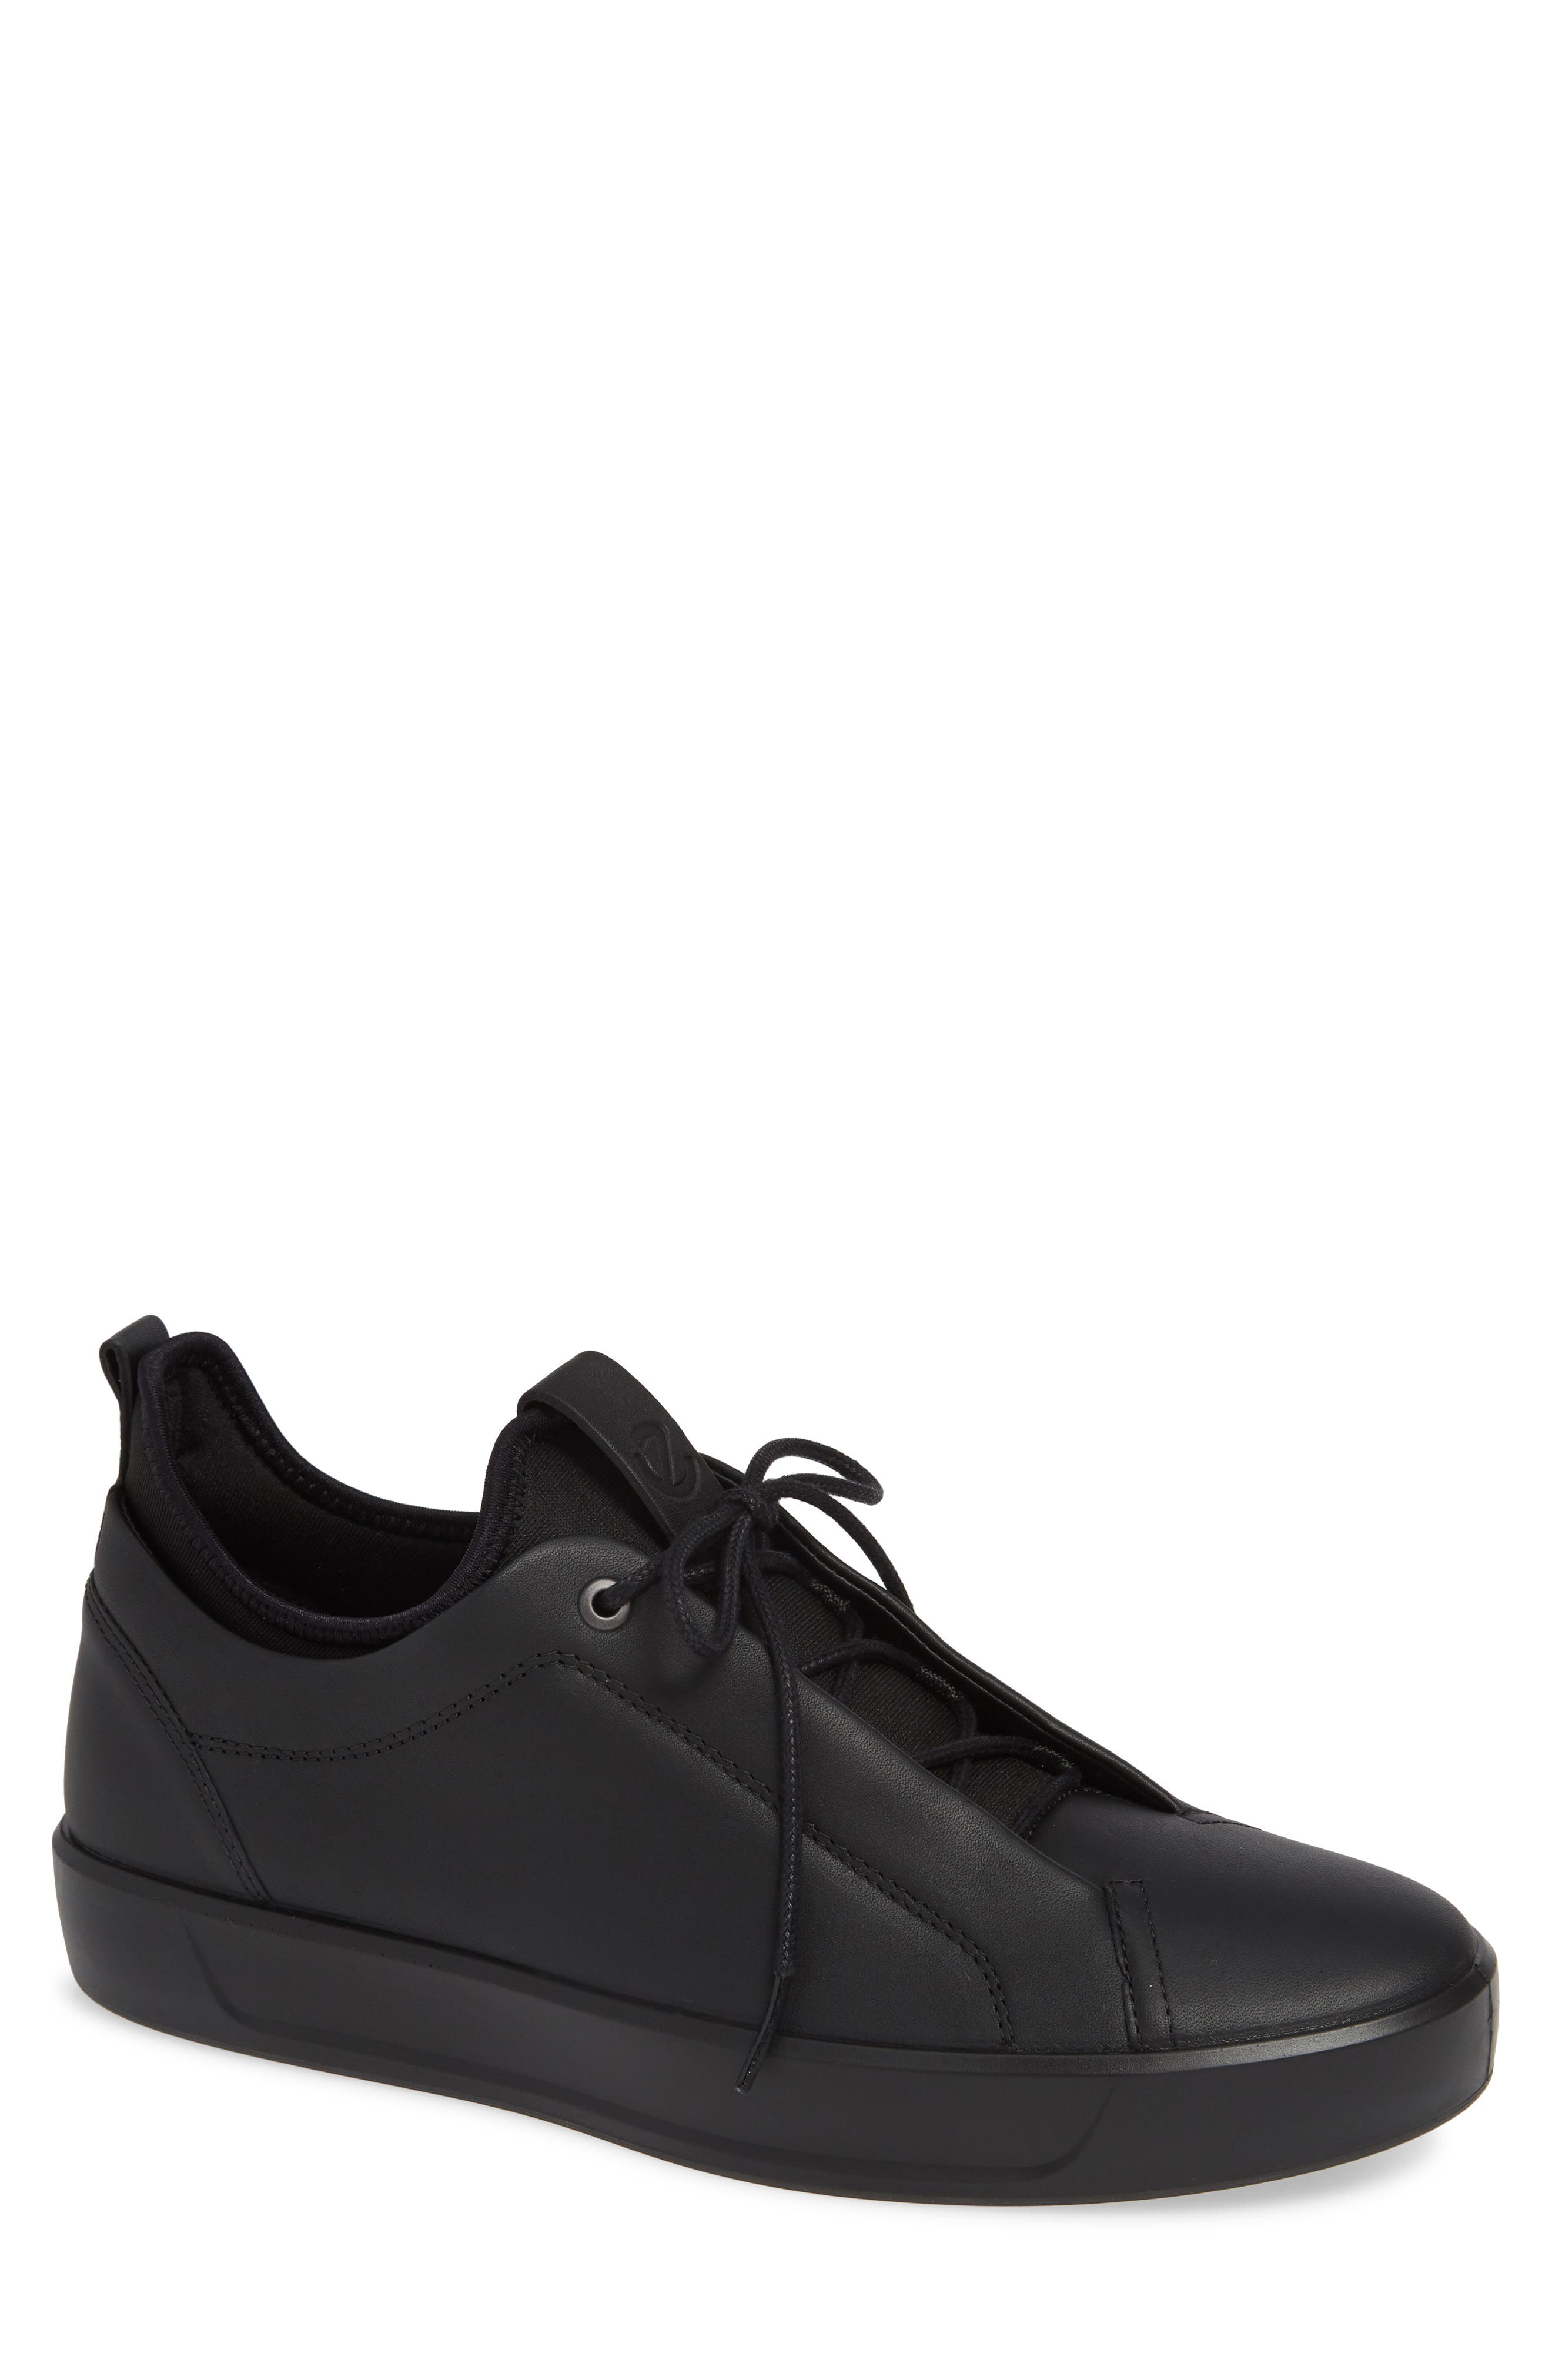 Soft 8 Low Top Sneaker,                         Main,                         color, BLACK LEATHER